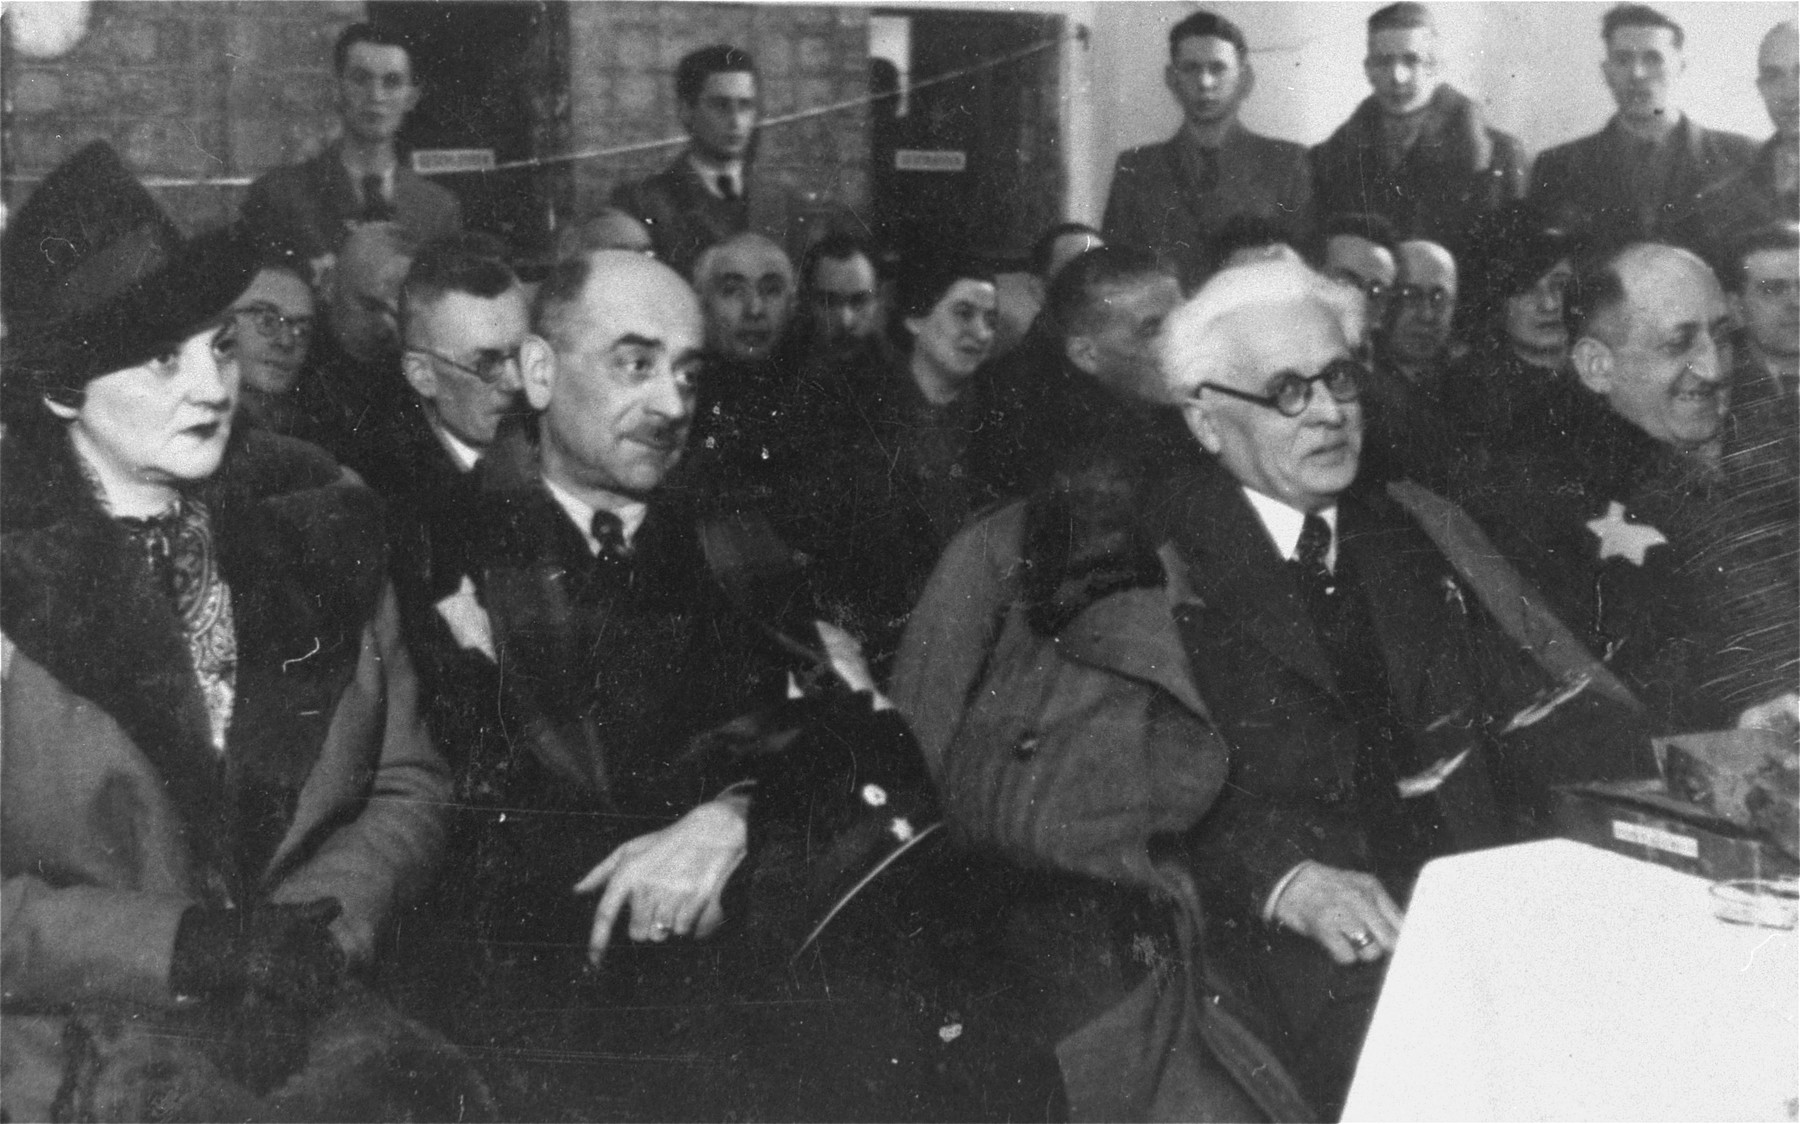 Jewish council chairman Mordechai Chaim Rumkowski (center, left), attends a ceremony in the Lodz ghetto at which he was given a presentation album.  Pictured in the front row from left to right are: Helena Rumkowska, Leon Rozenblat, Mordechai Chaim Rumkowski and Dr. Leon Szykier.